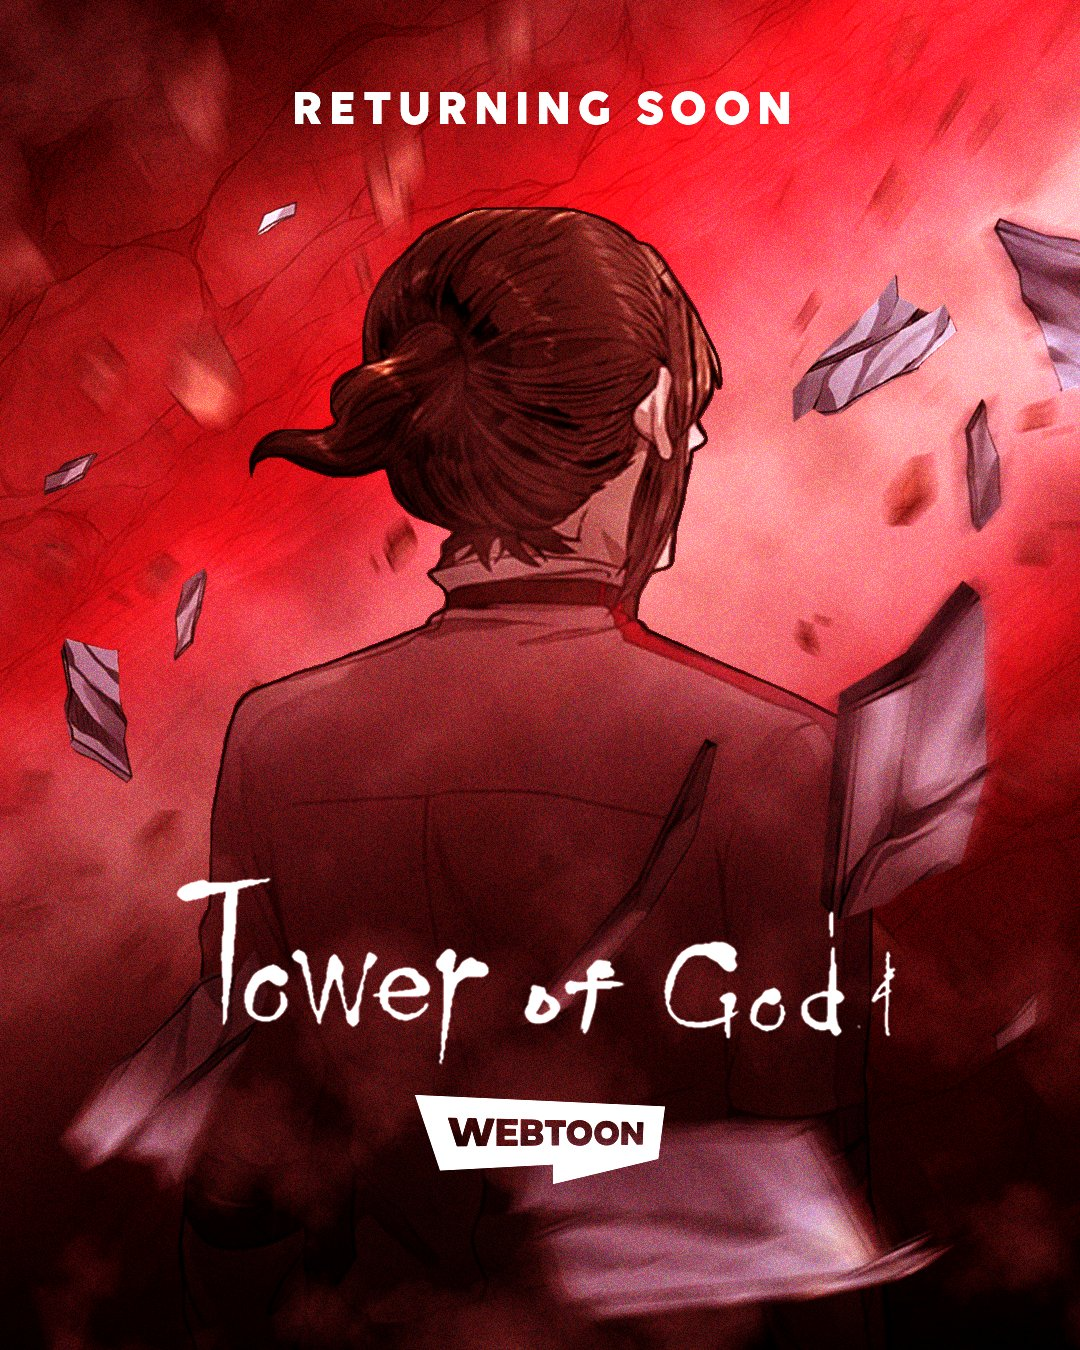 Tower of God return soon